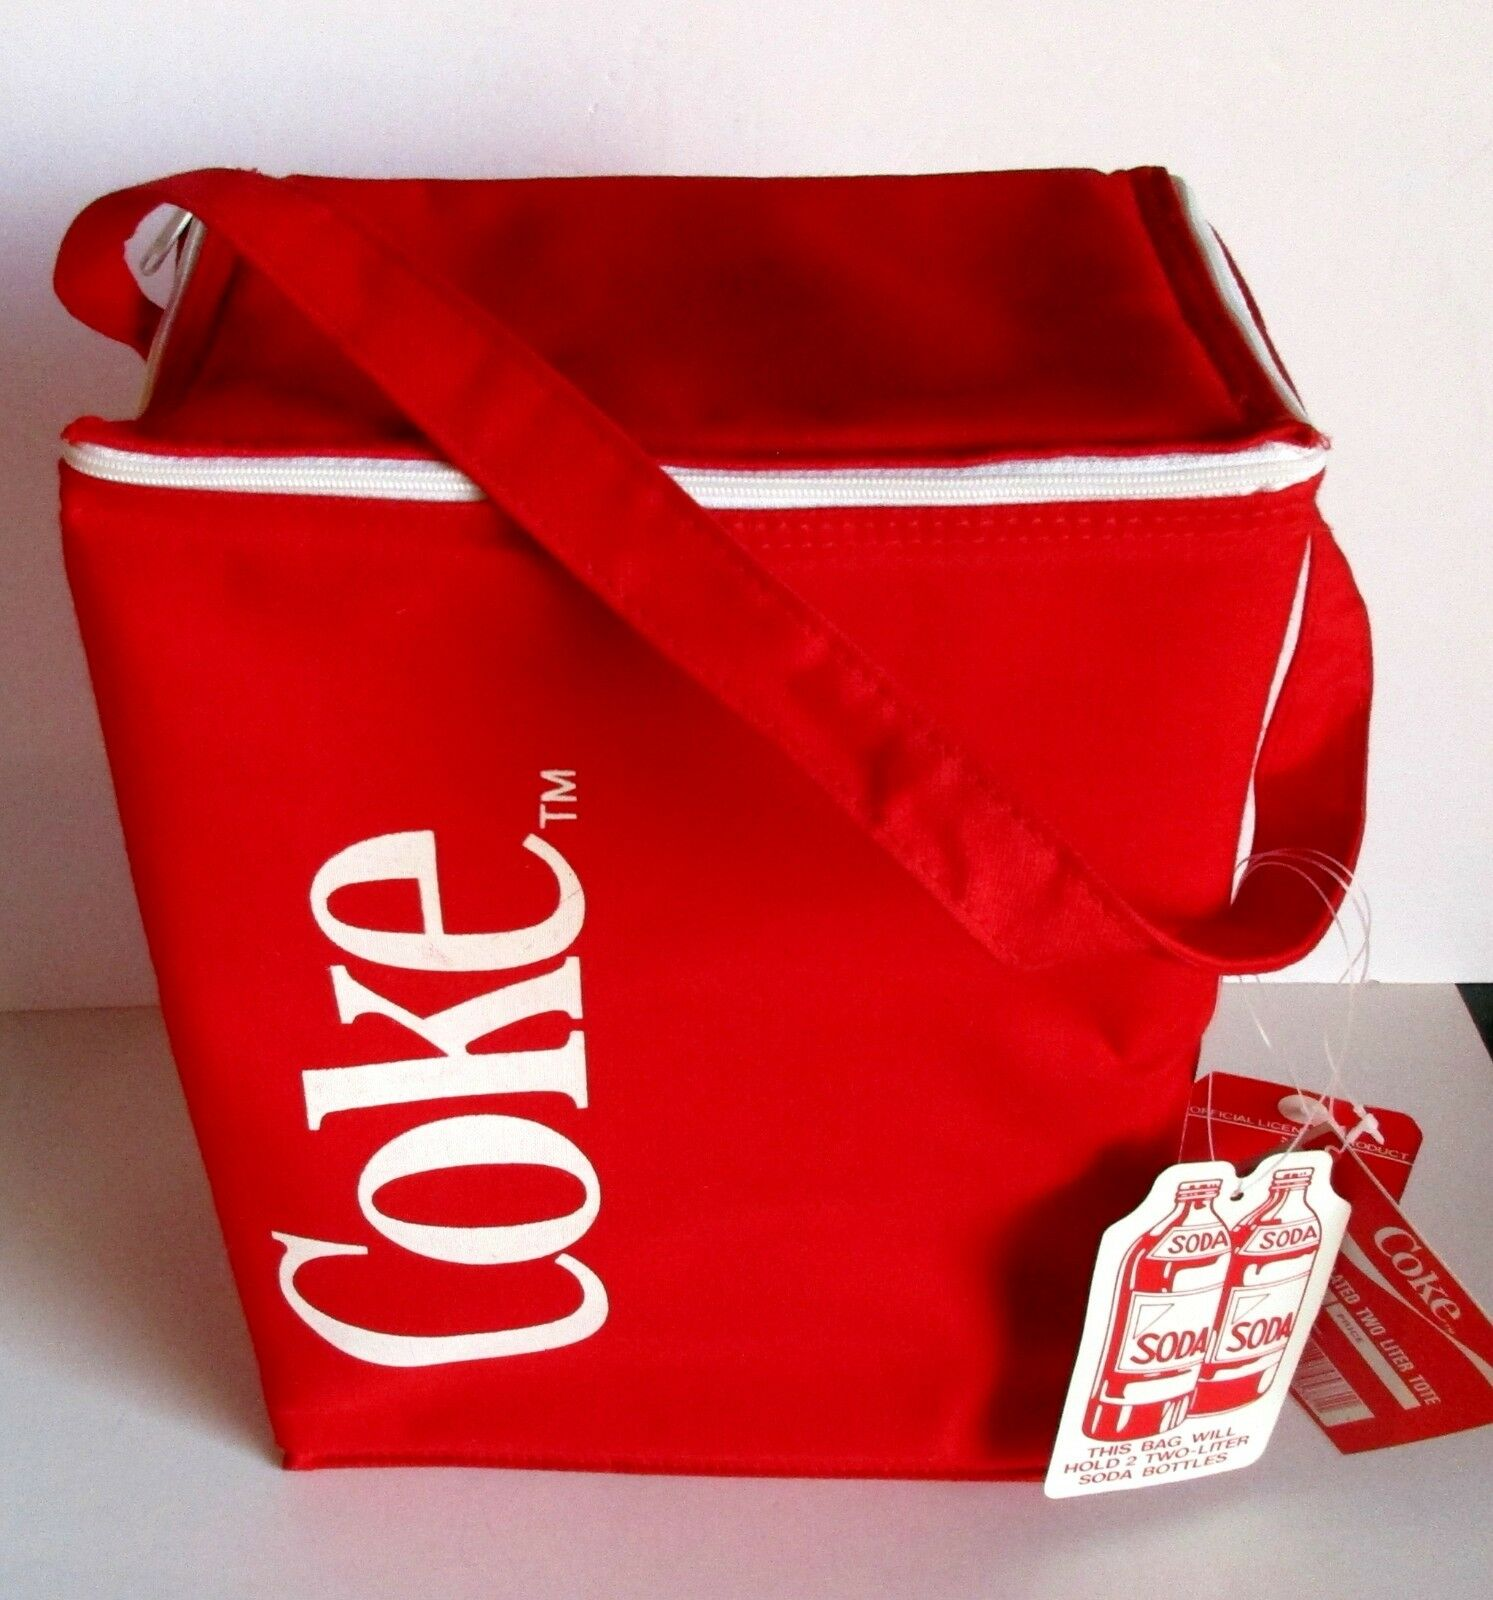 Details about  /Collectible  Red Tote Bag white Insulated Coca-Cola Cooler Bag cat J778